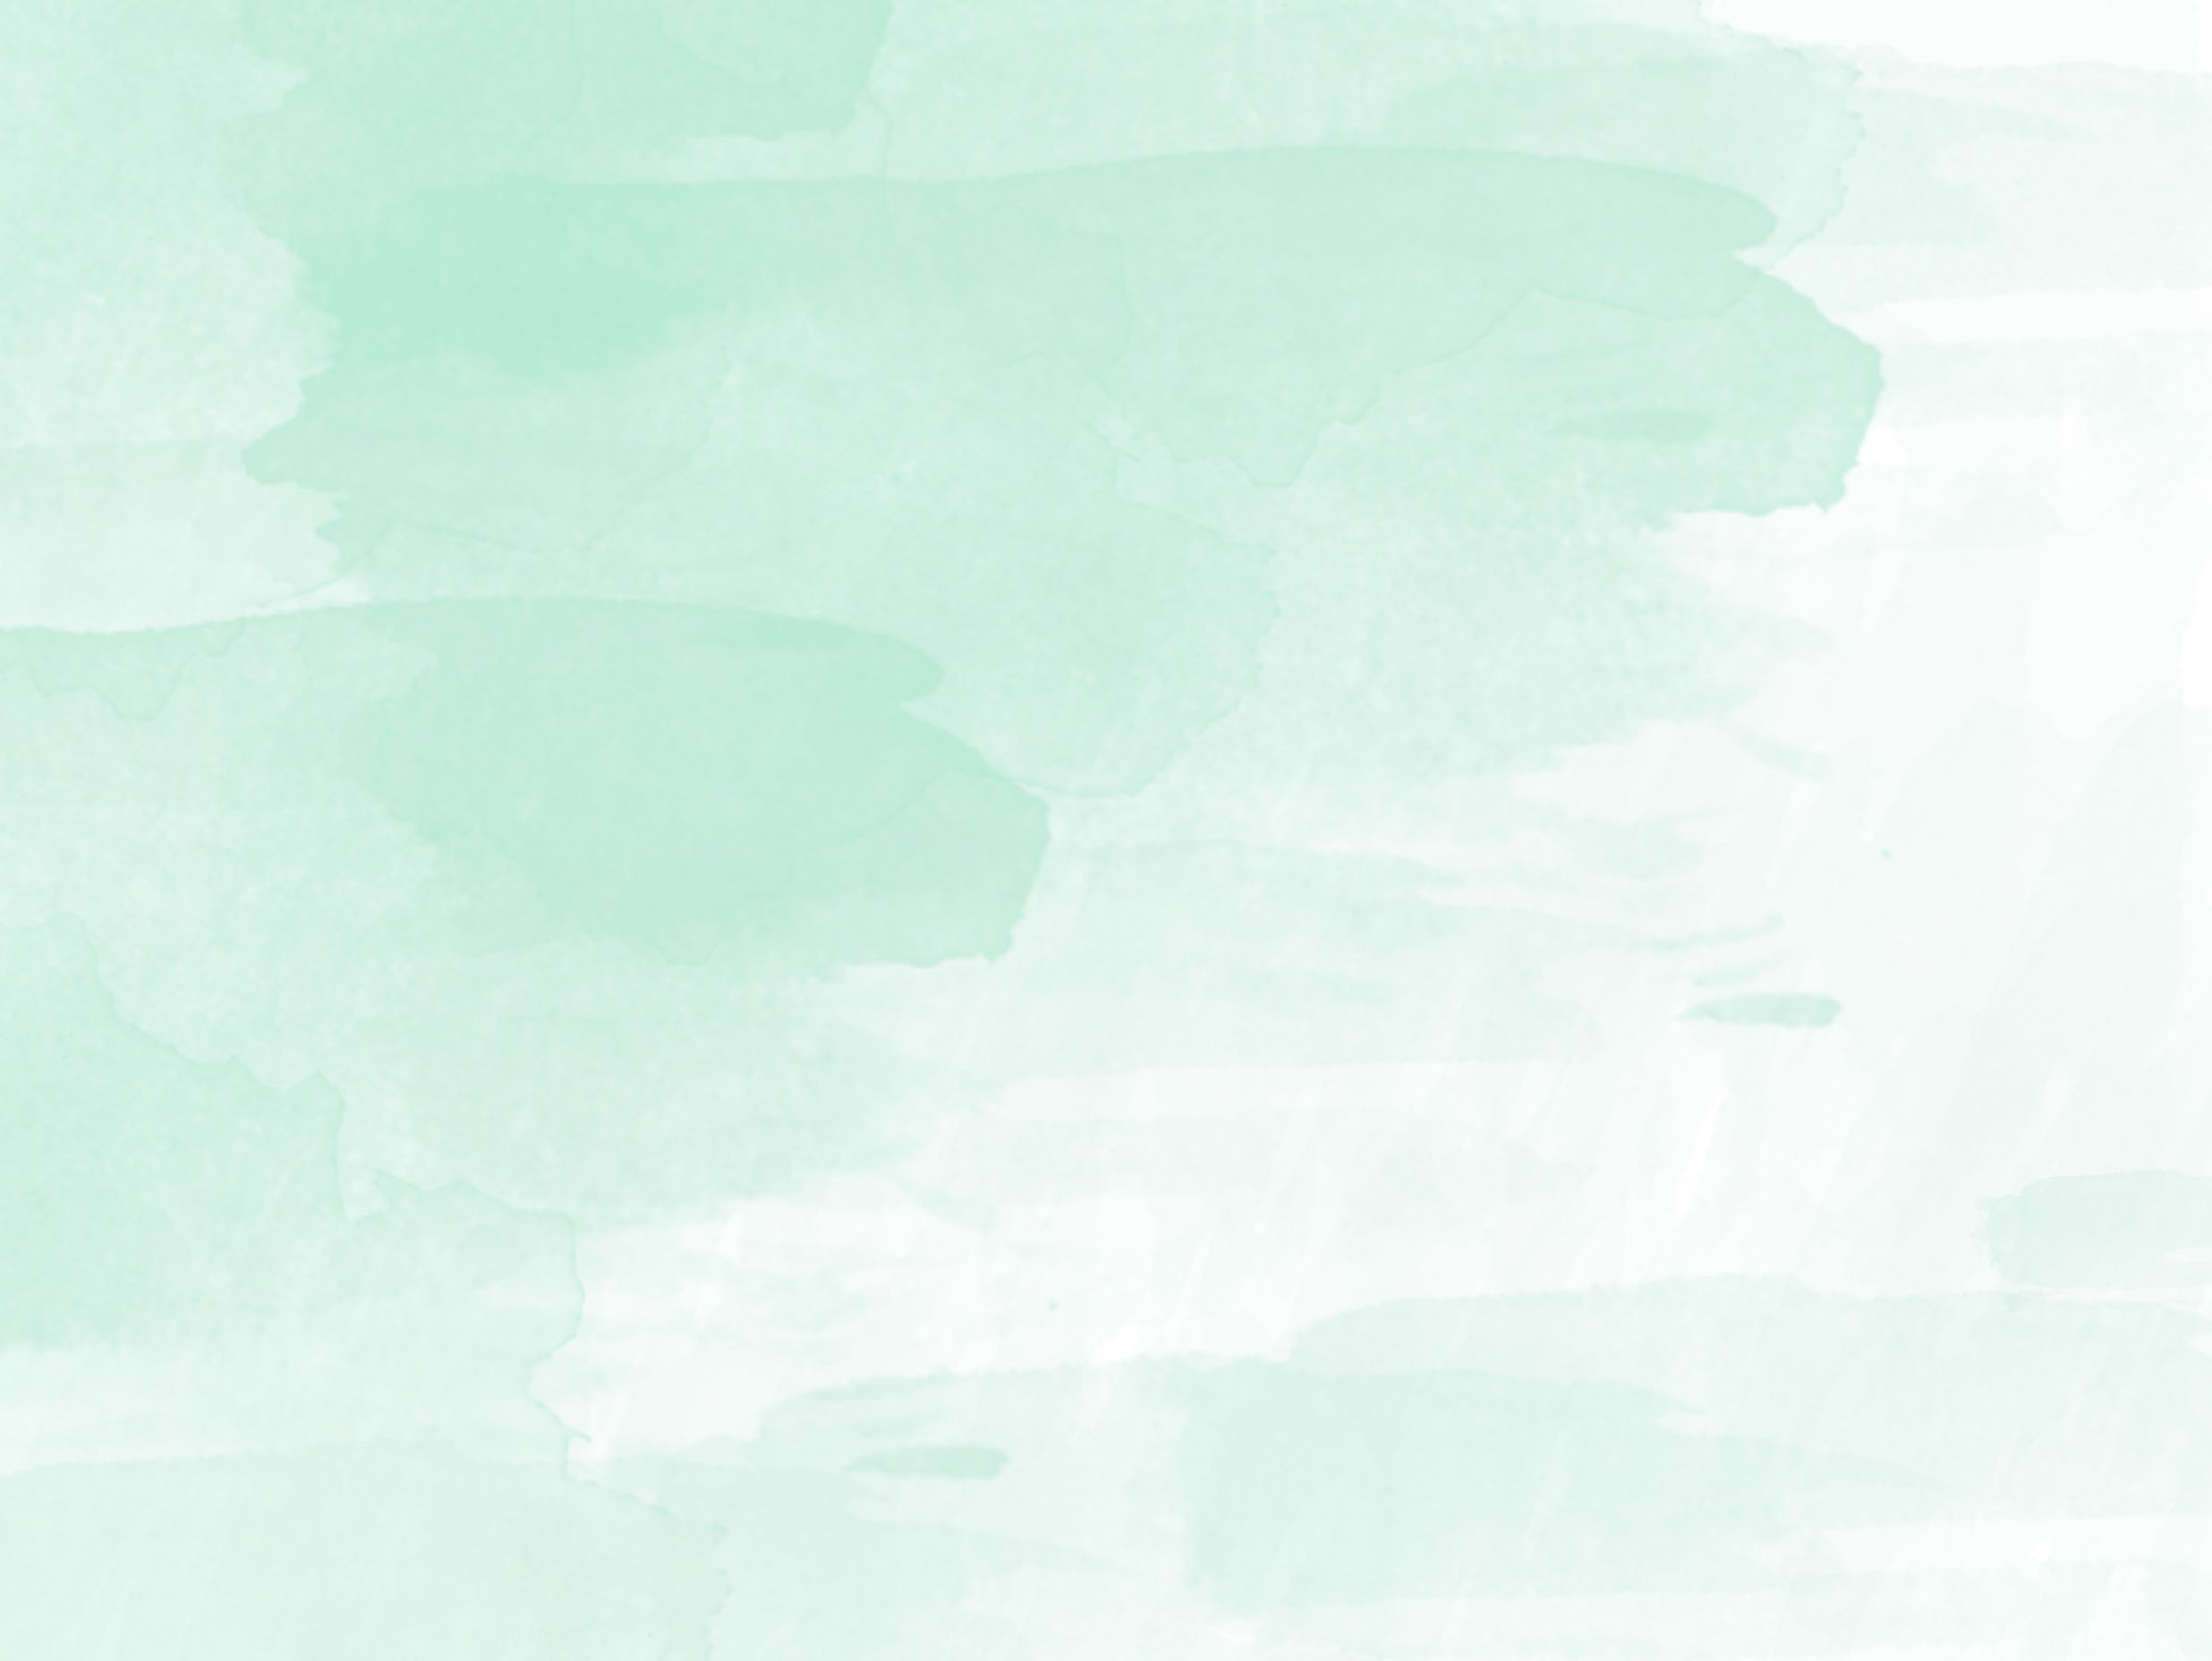 Free Wallpaper Hello Watercolor Mint Green Wallpaper